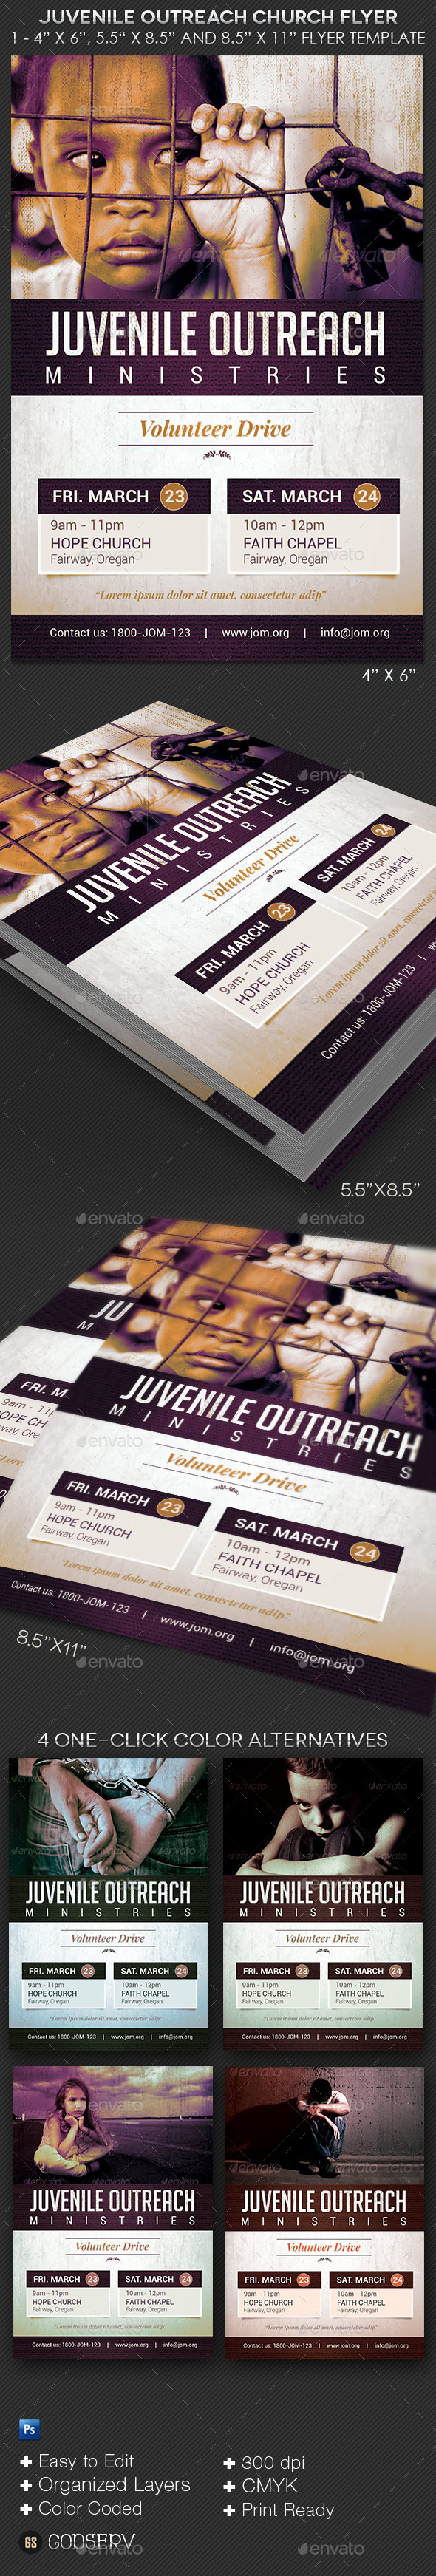 GraphicRiver Juvenile Outreach Church Flyer Template 10621709